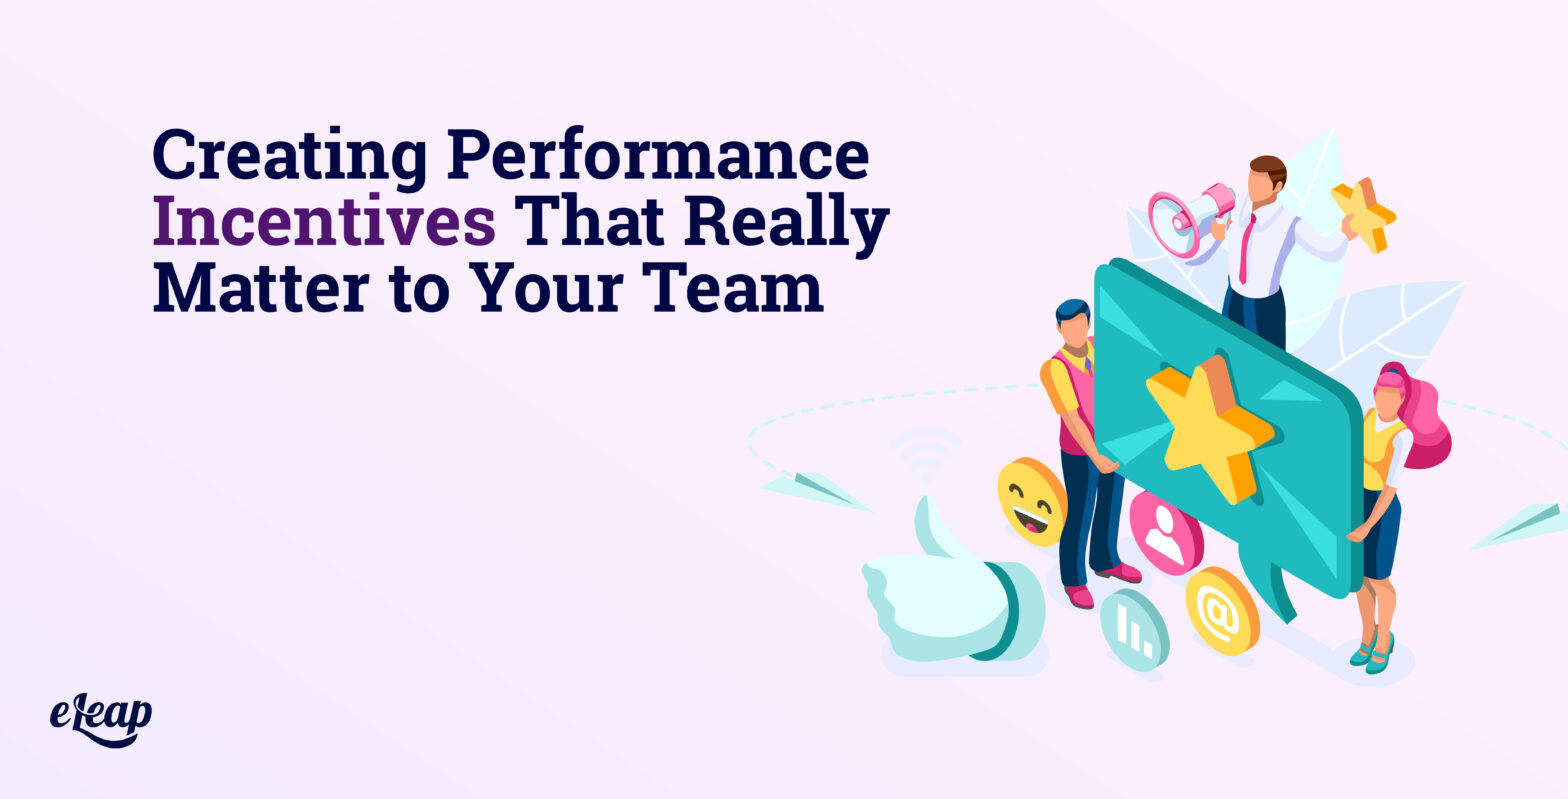 Creating Performance Incentives That Really Matter to Your Team